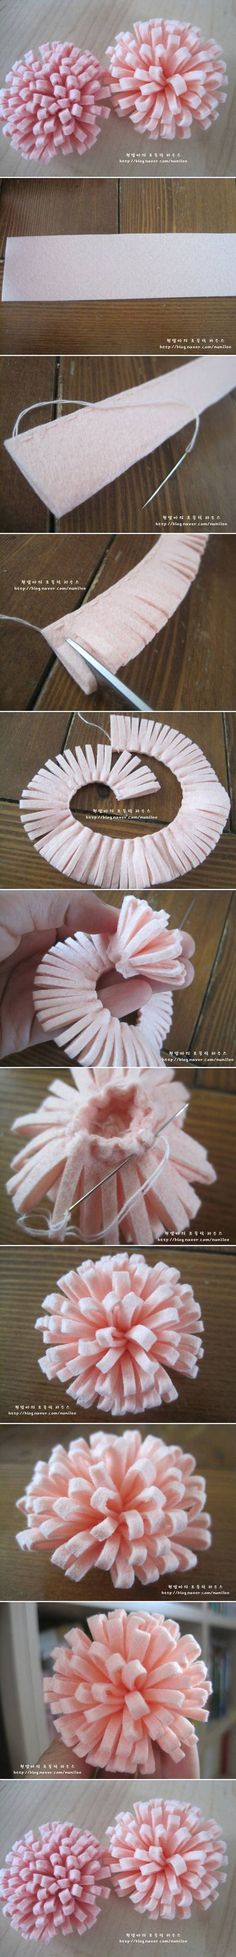 DIY Simple Easy Felt Flower DIY Projects / UsefulDIY.com